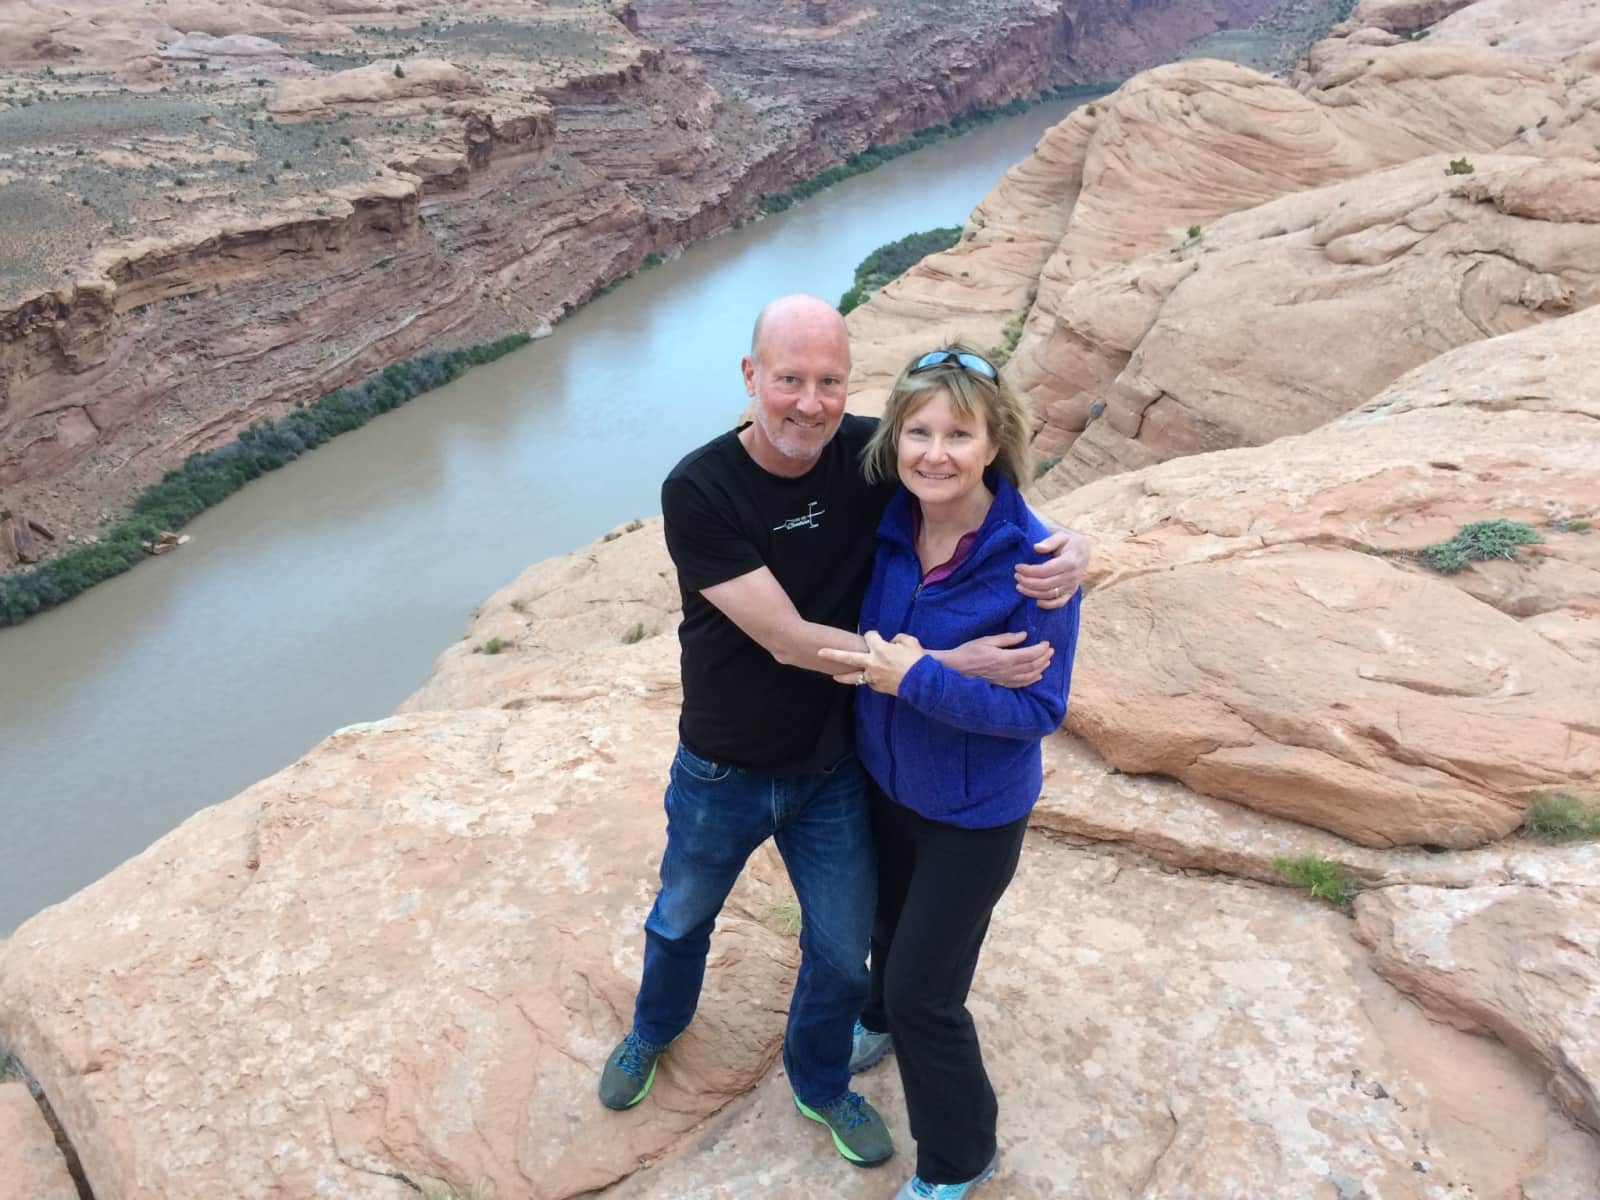 Sue & Dave from Fort Collins, Colorado, United States